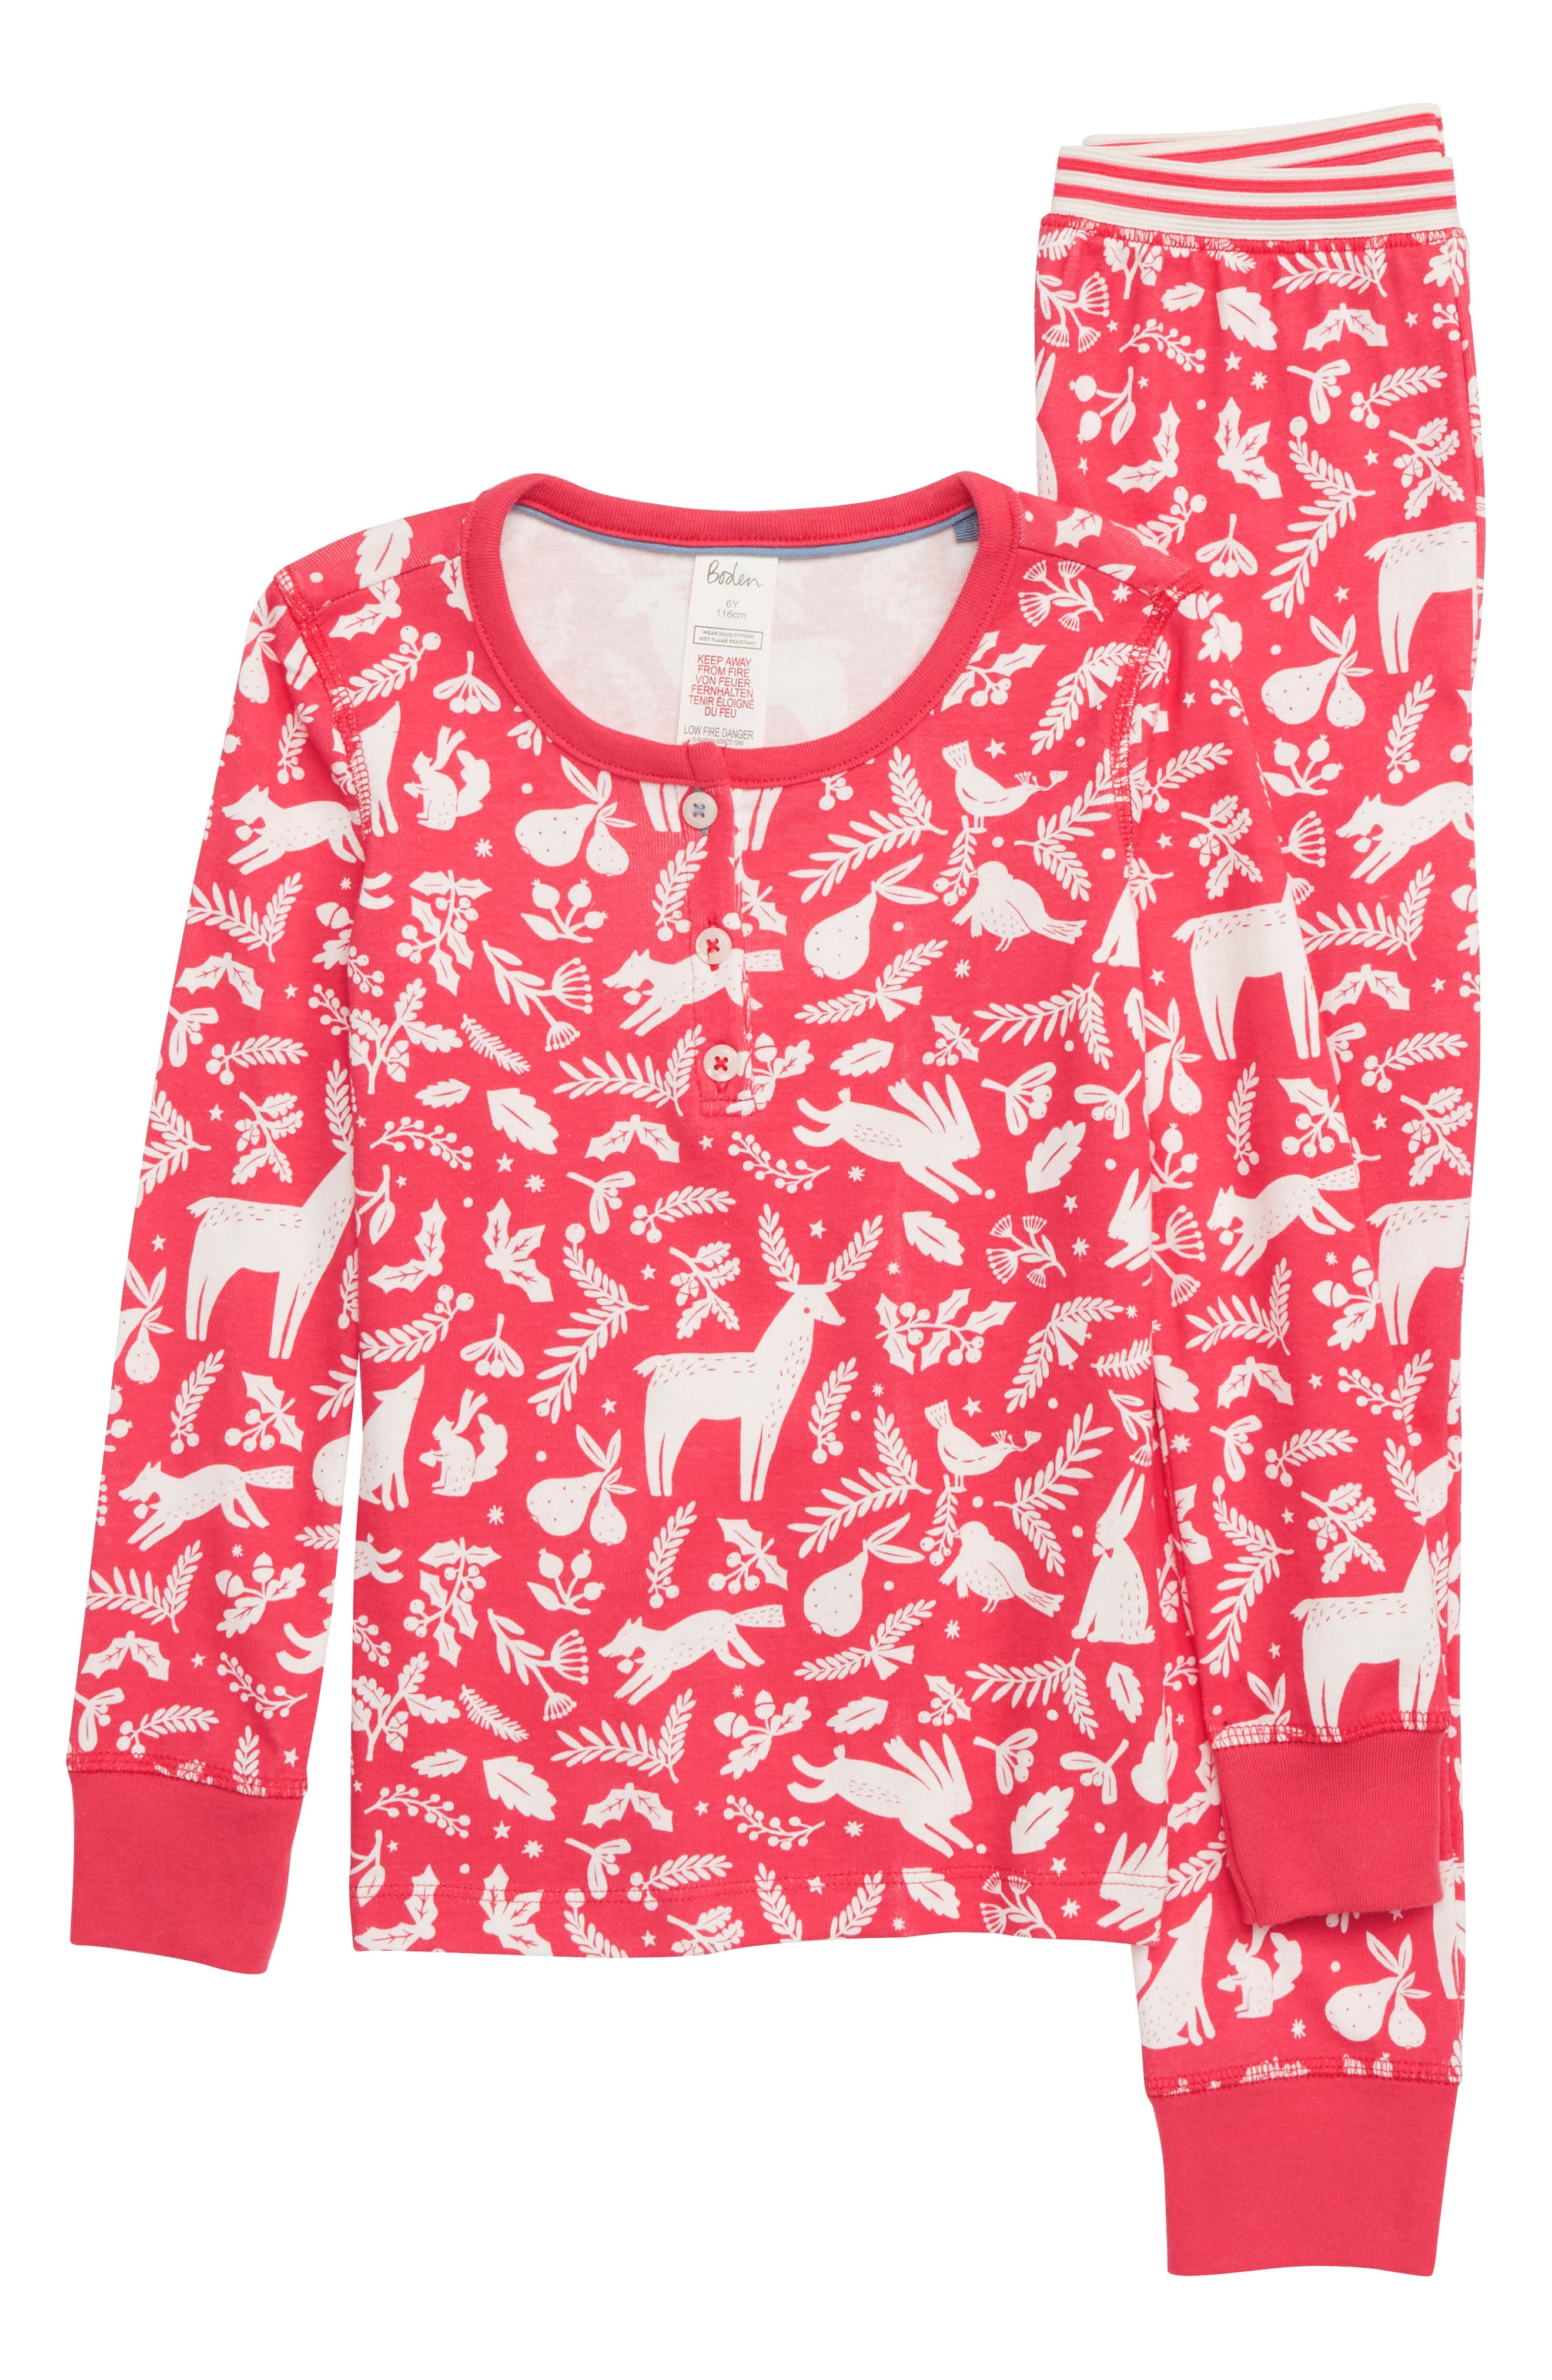 Girls Mini Boden Fitted TwoPiece Pajamas Size 10Y  Pink